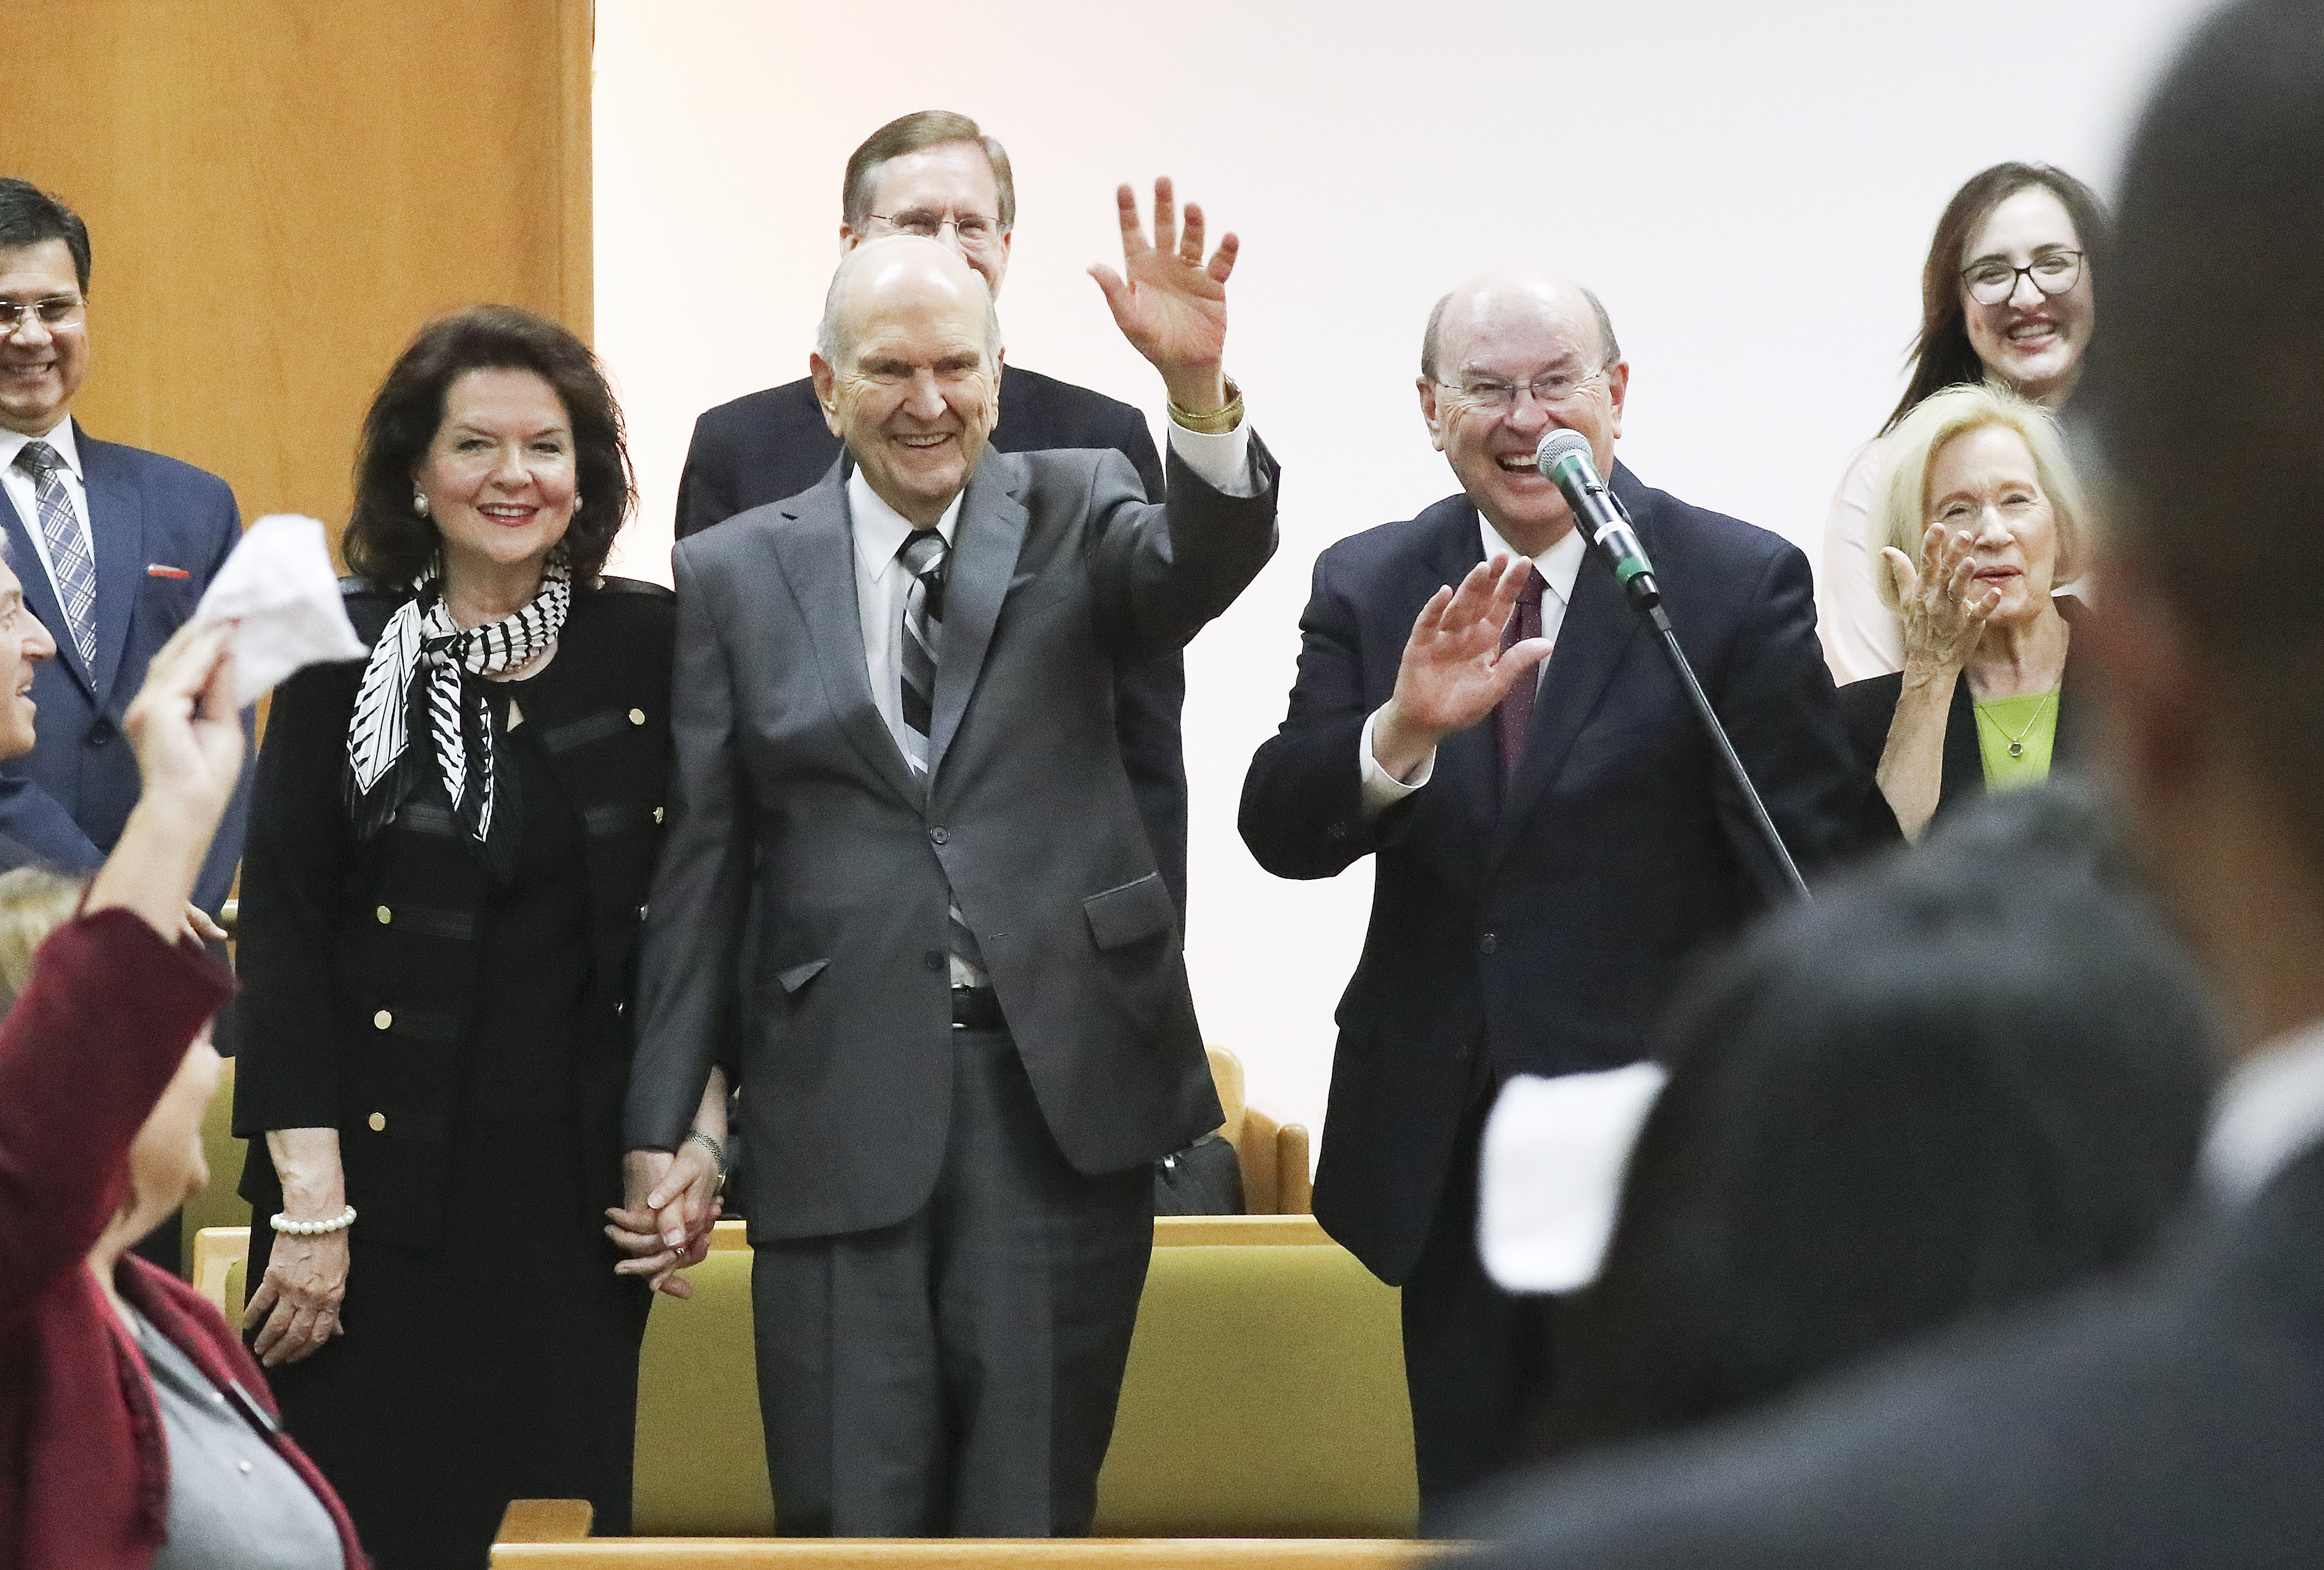 President Russell M. Nelson of The Church of Jesus Christ of Latter-day Saints and his wife Sister Wendy Nelson with Elder Quentin L. Cook, Quorum of the Twelve Apostles, and his wife Sister Mary Cook wave to missionaries after speaking during a Brasilia Mission meeting in Brasilia, Brazil on Friday, Aug. 30, 2019.